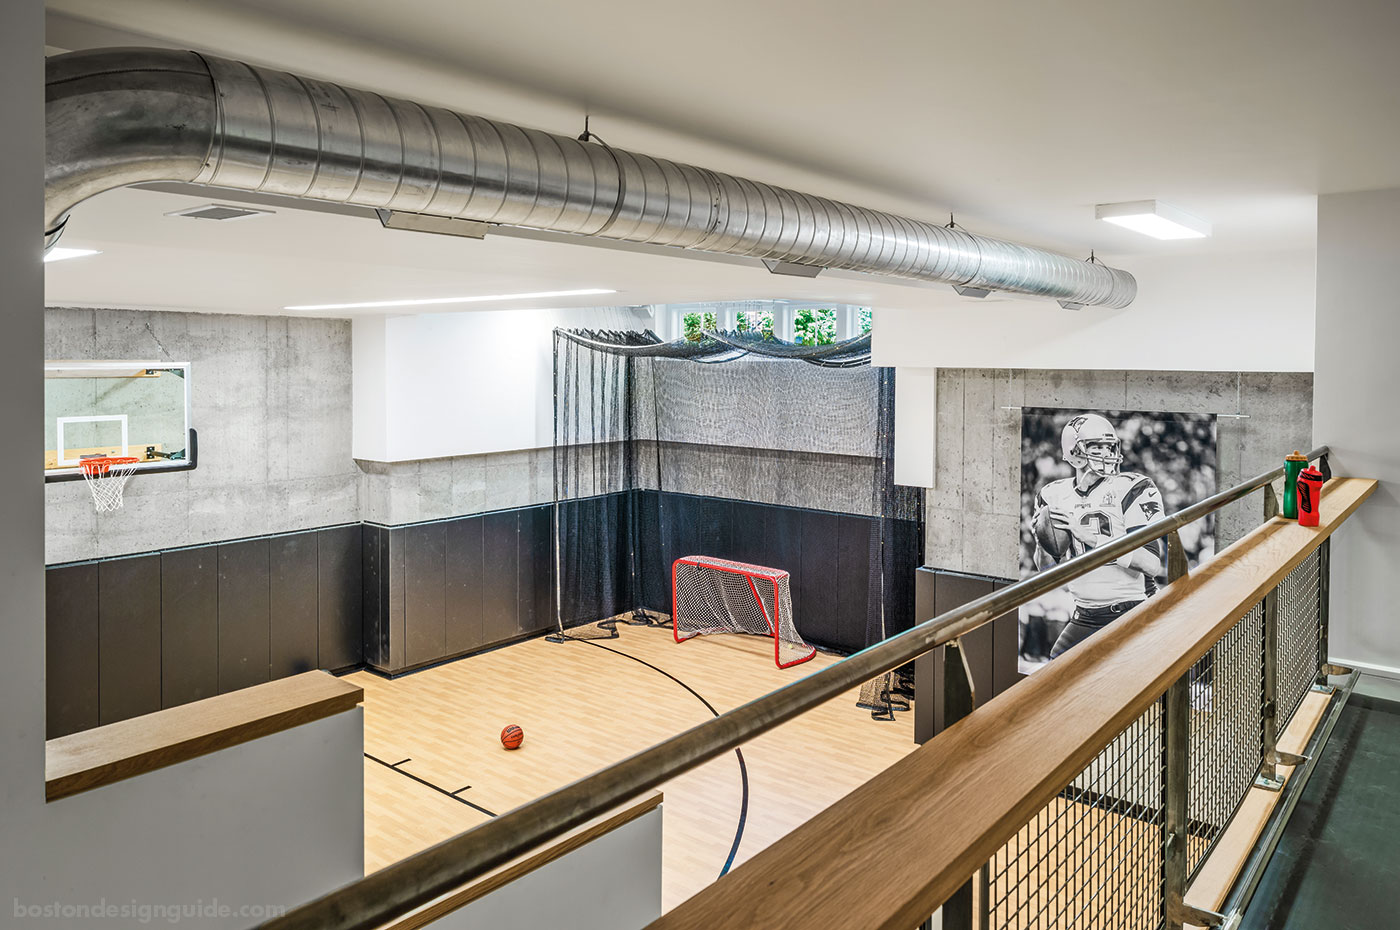 Basement sport court by Flavin Architects